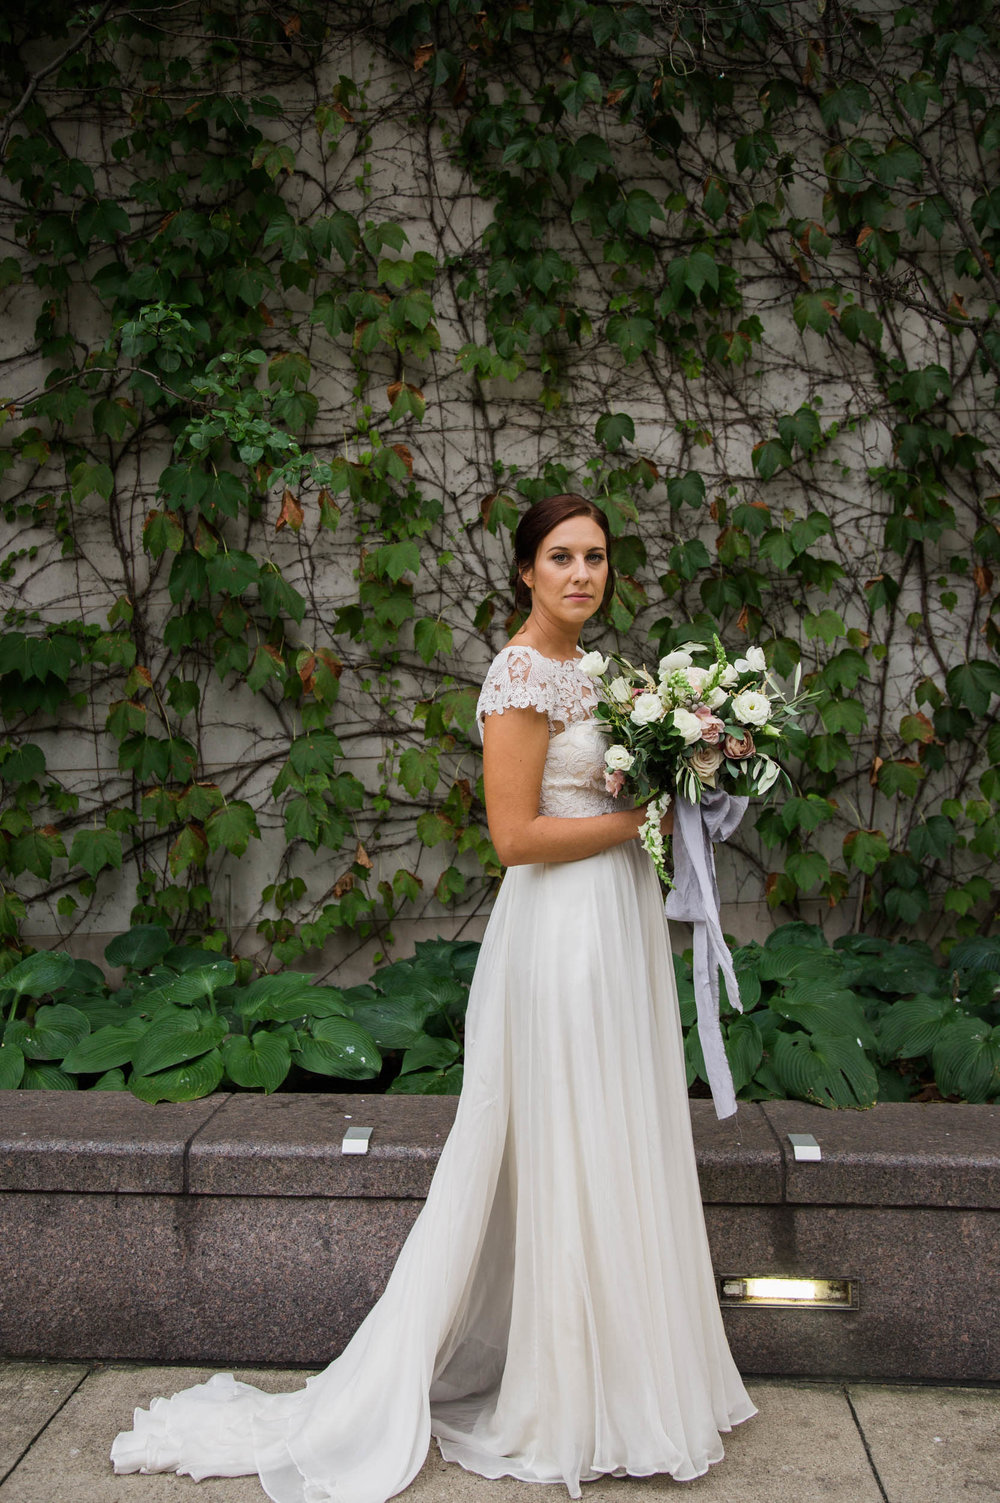 Chicago Wedding - Bride in Bhldn Gown